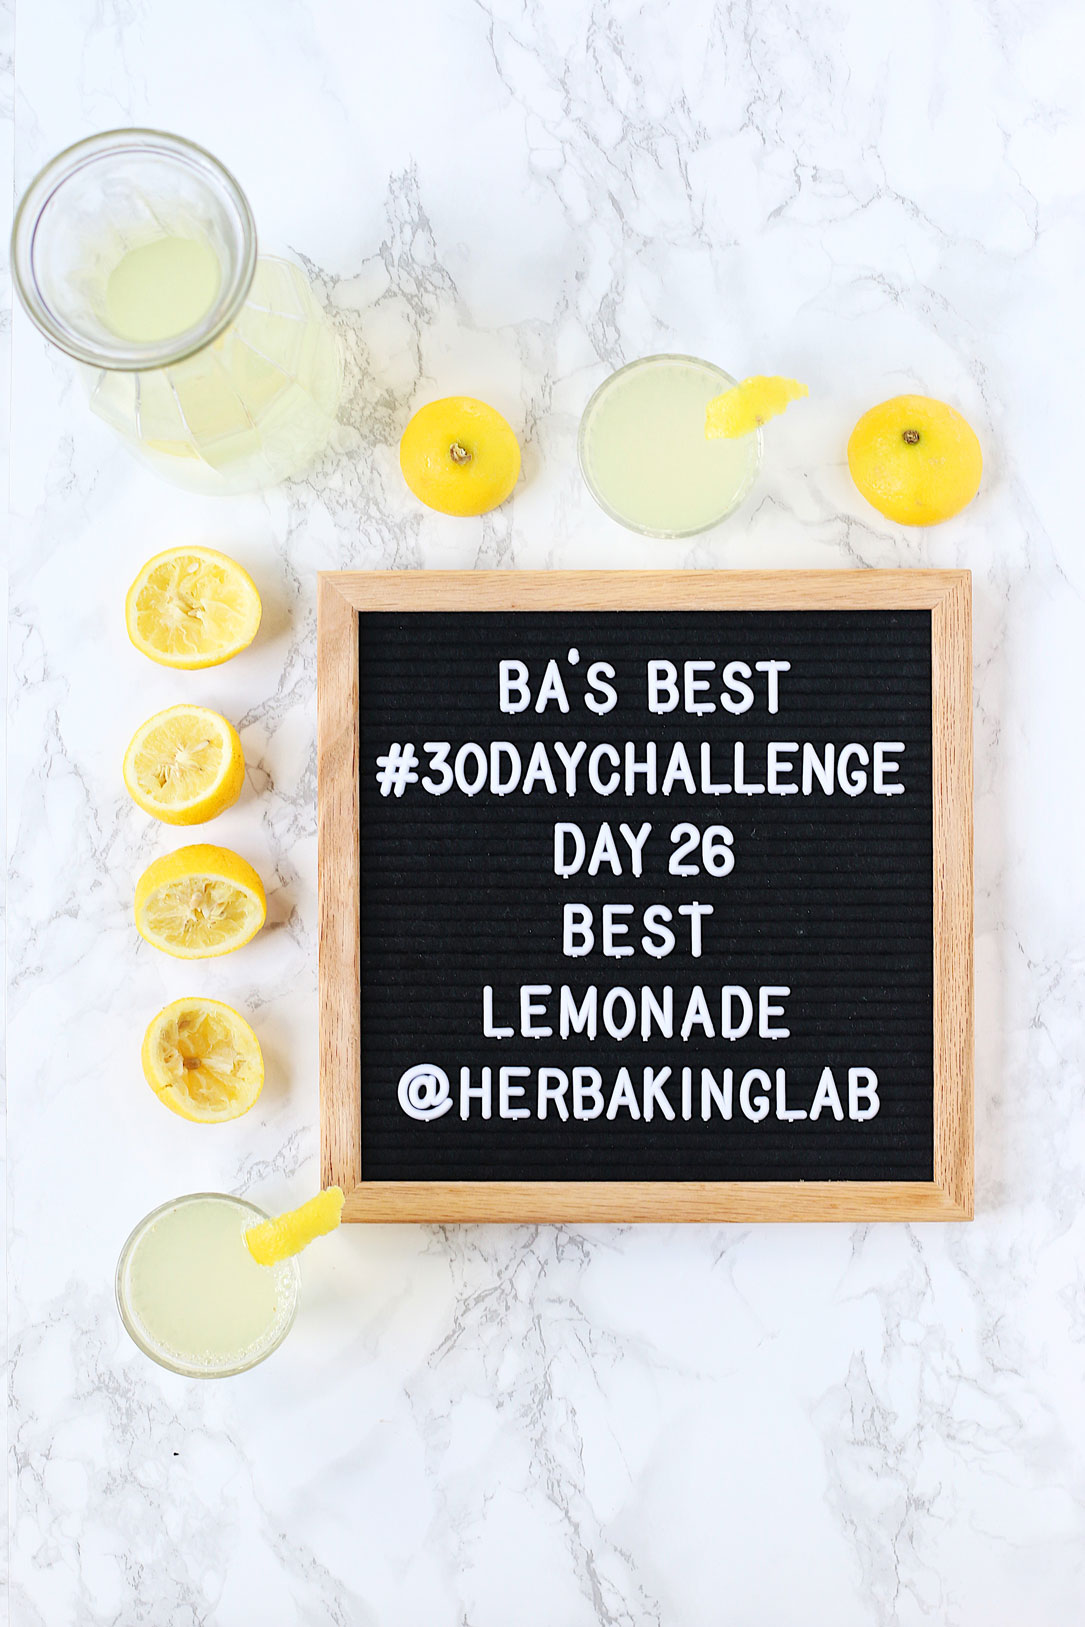 #ba30daychallenge-bon-appetit-best-recipes-day-26-best-lemonade